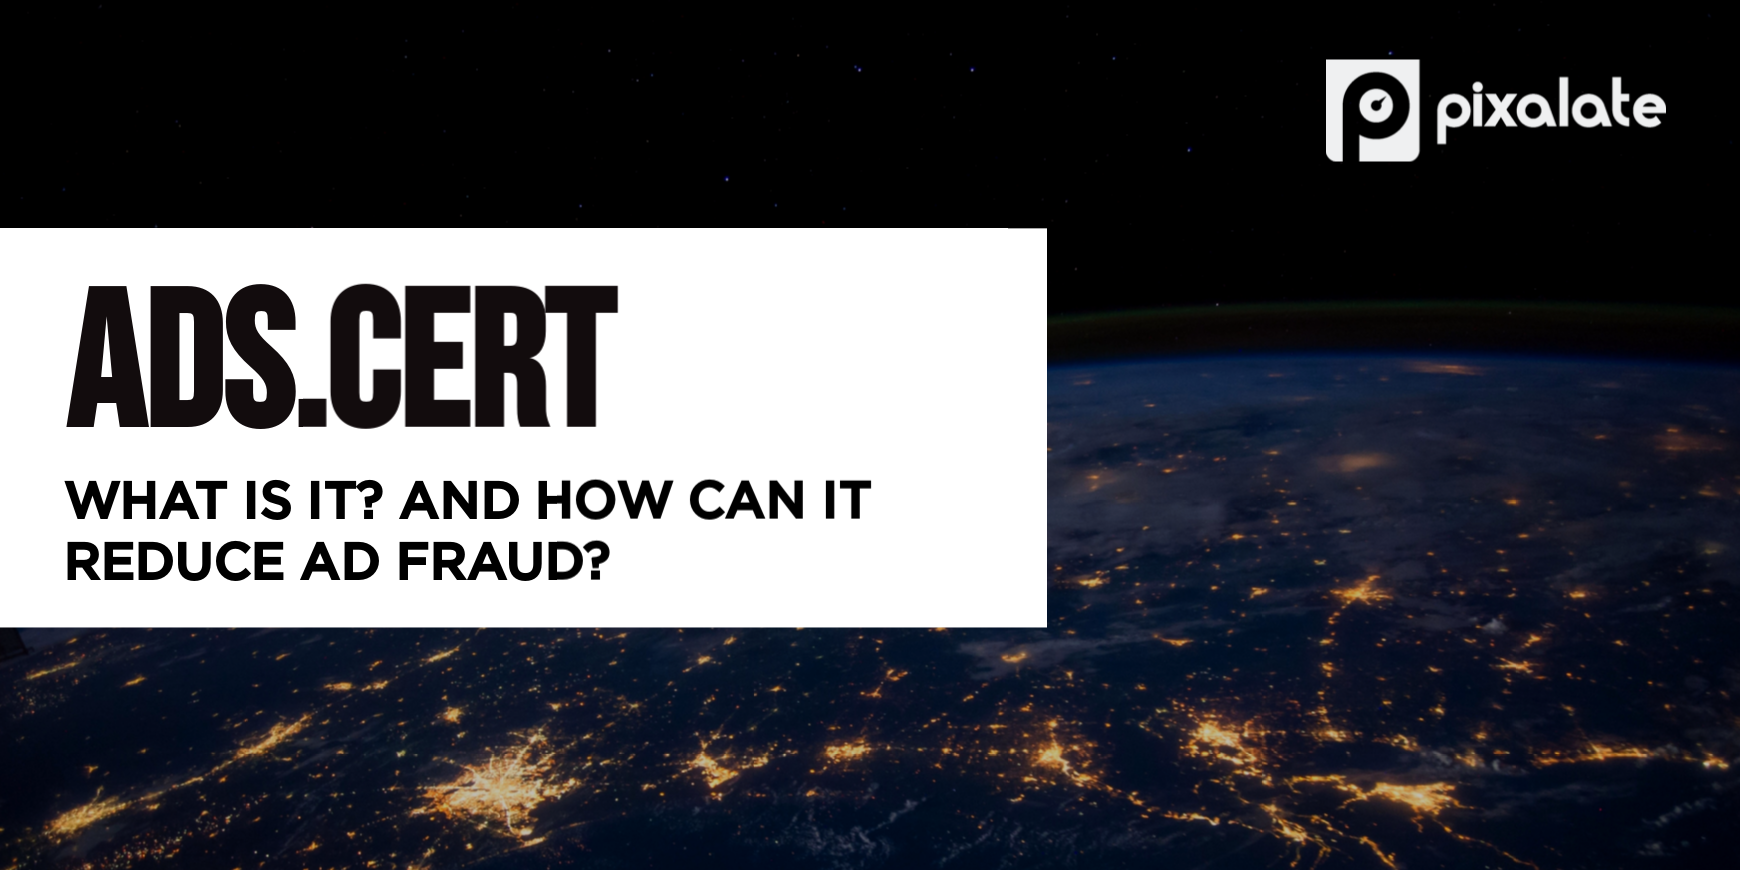 ads-cert-reduce-ad-fraud-cover